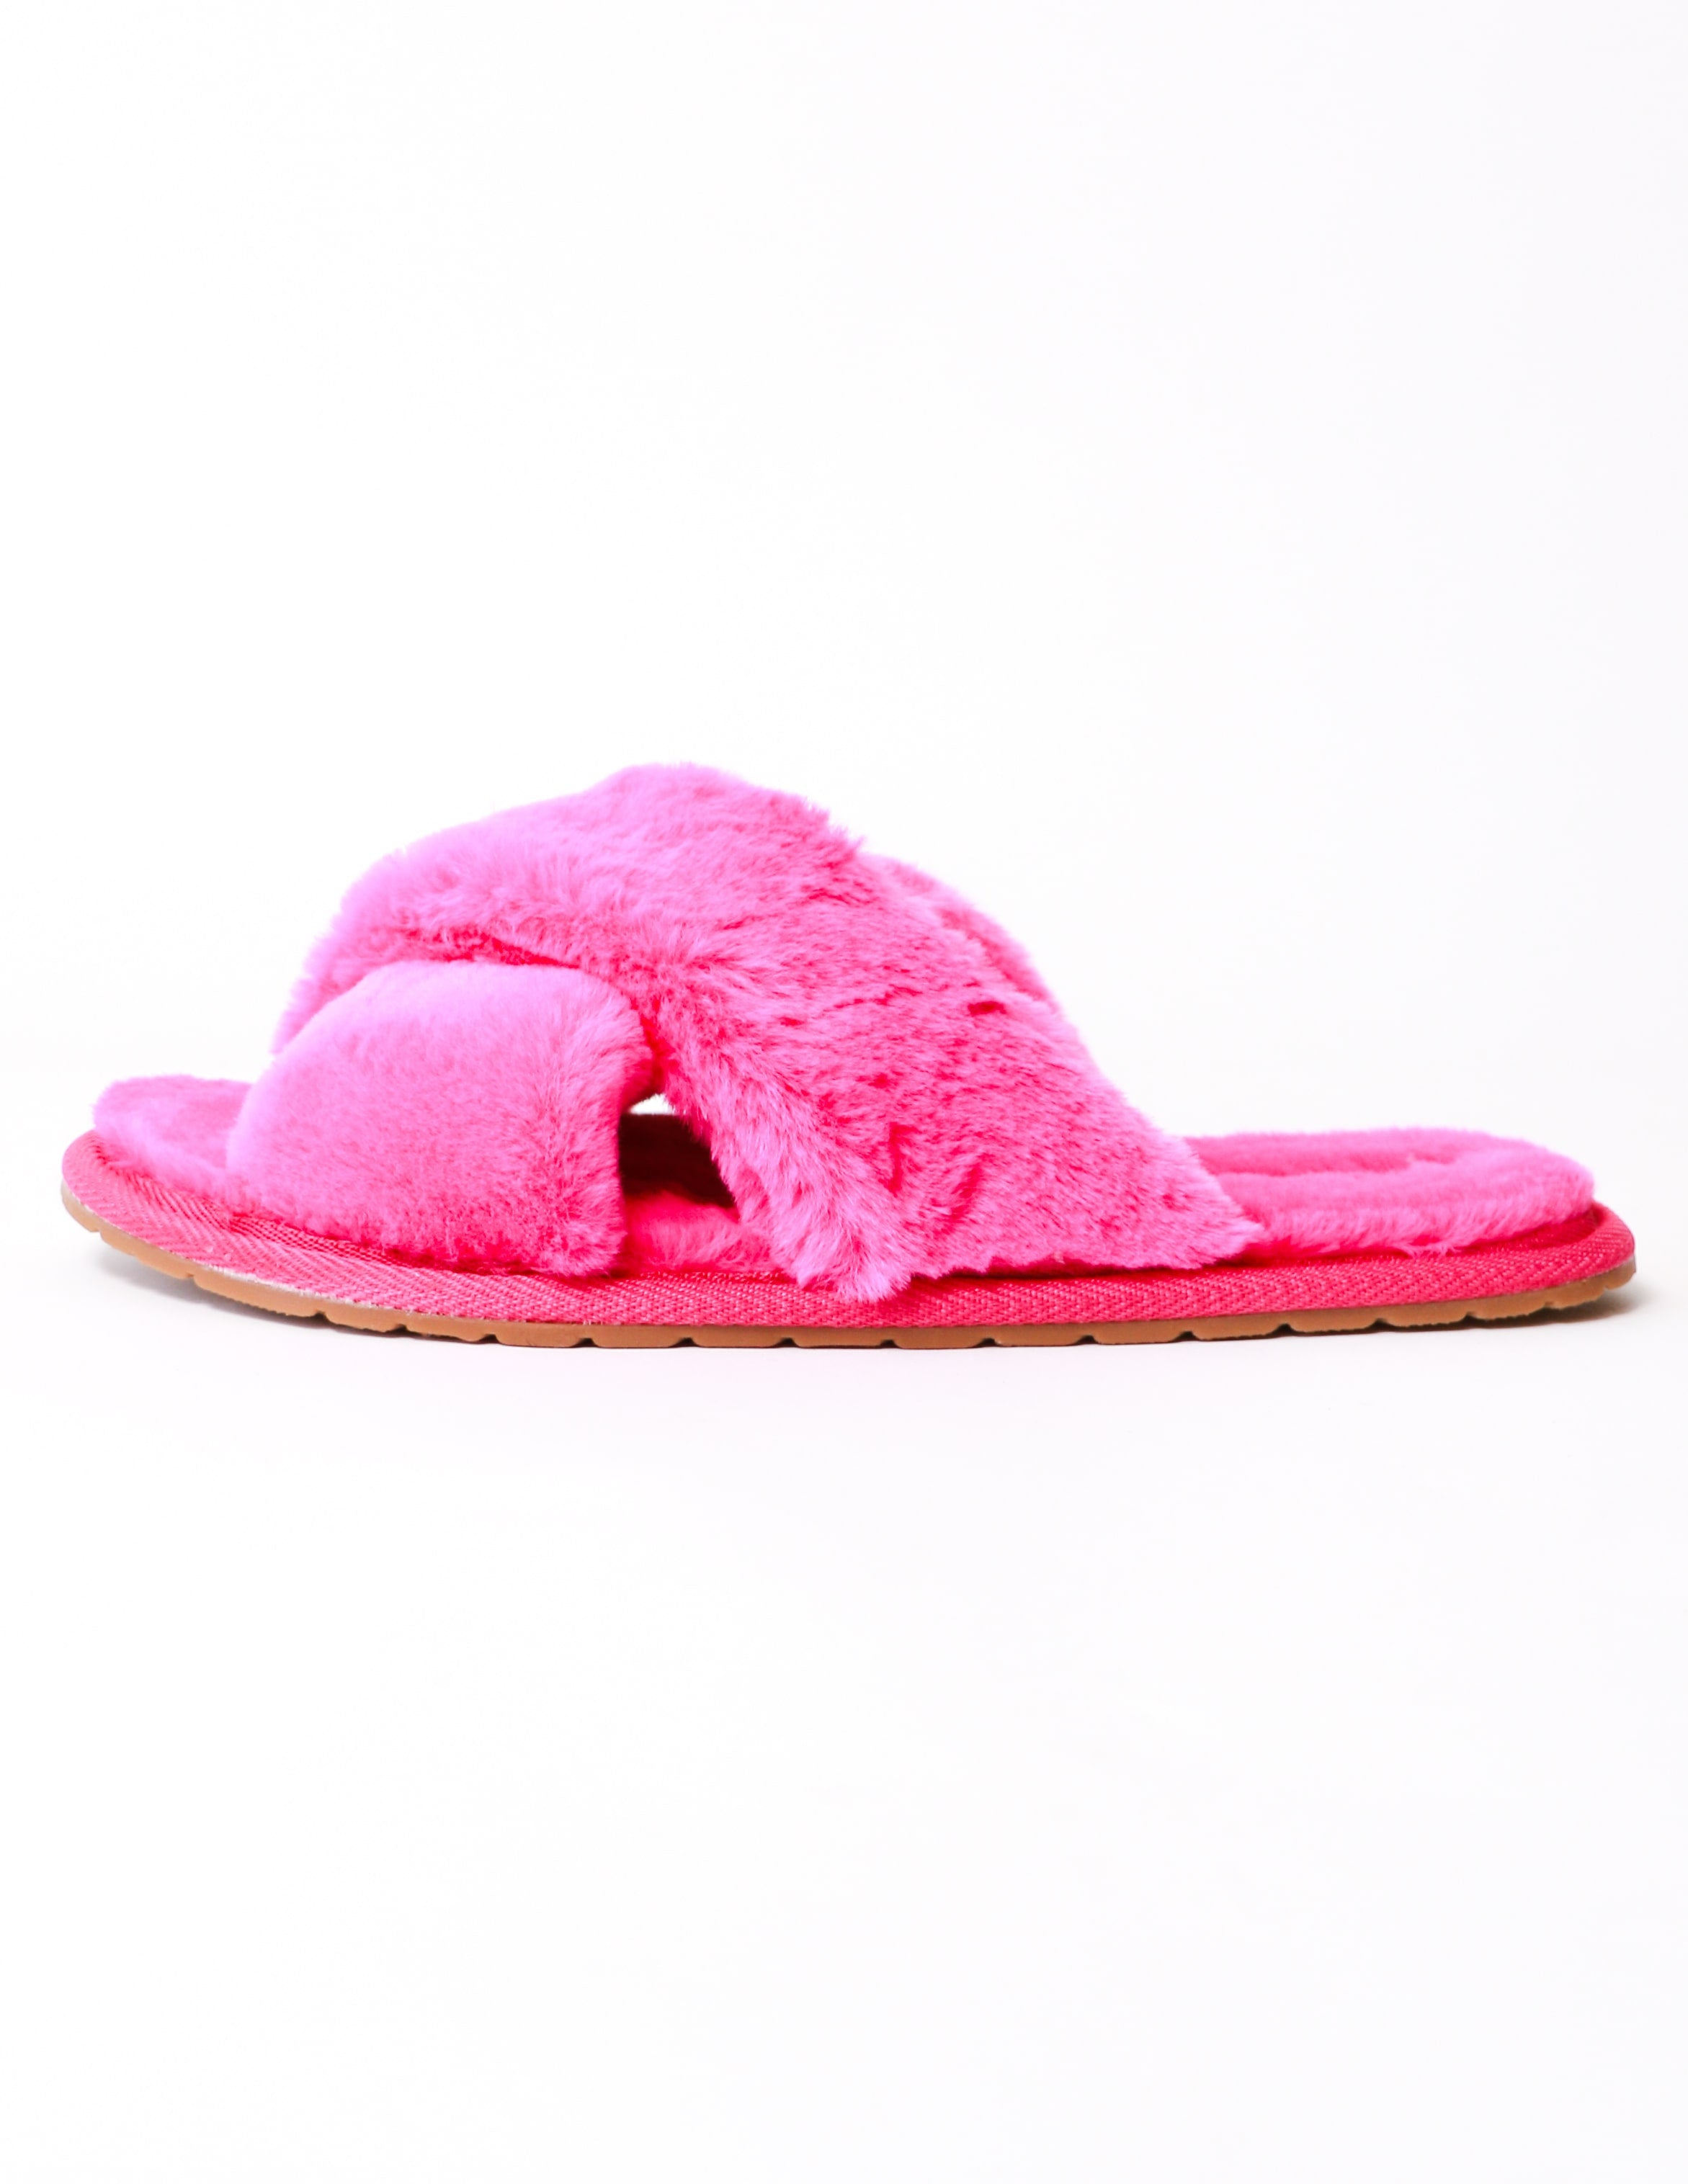 Pink fuschia fluffy slide slipper with rubber sole